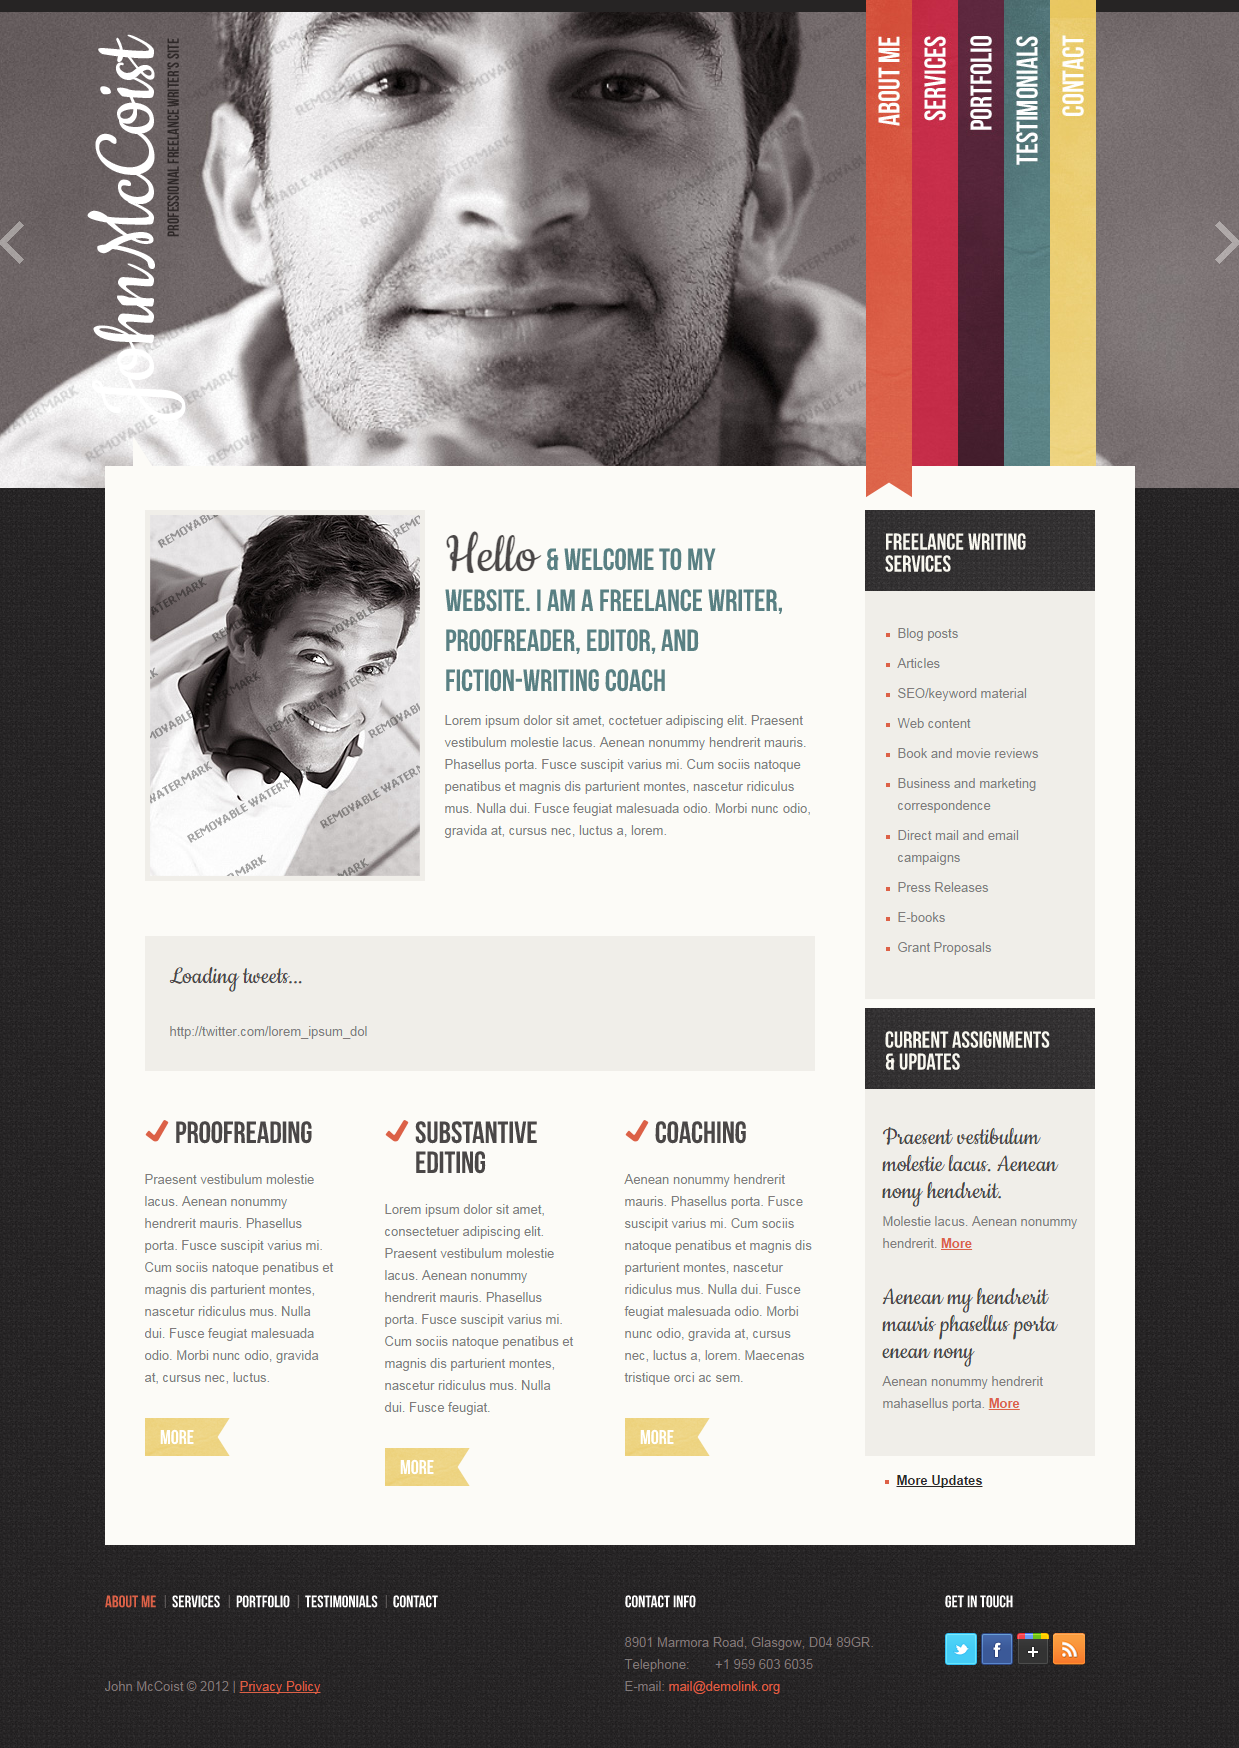 Freelance Writer Personal Website Templates Personal Website Templates Website Template Design Web App Design